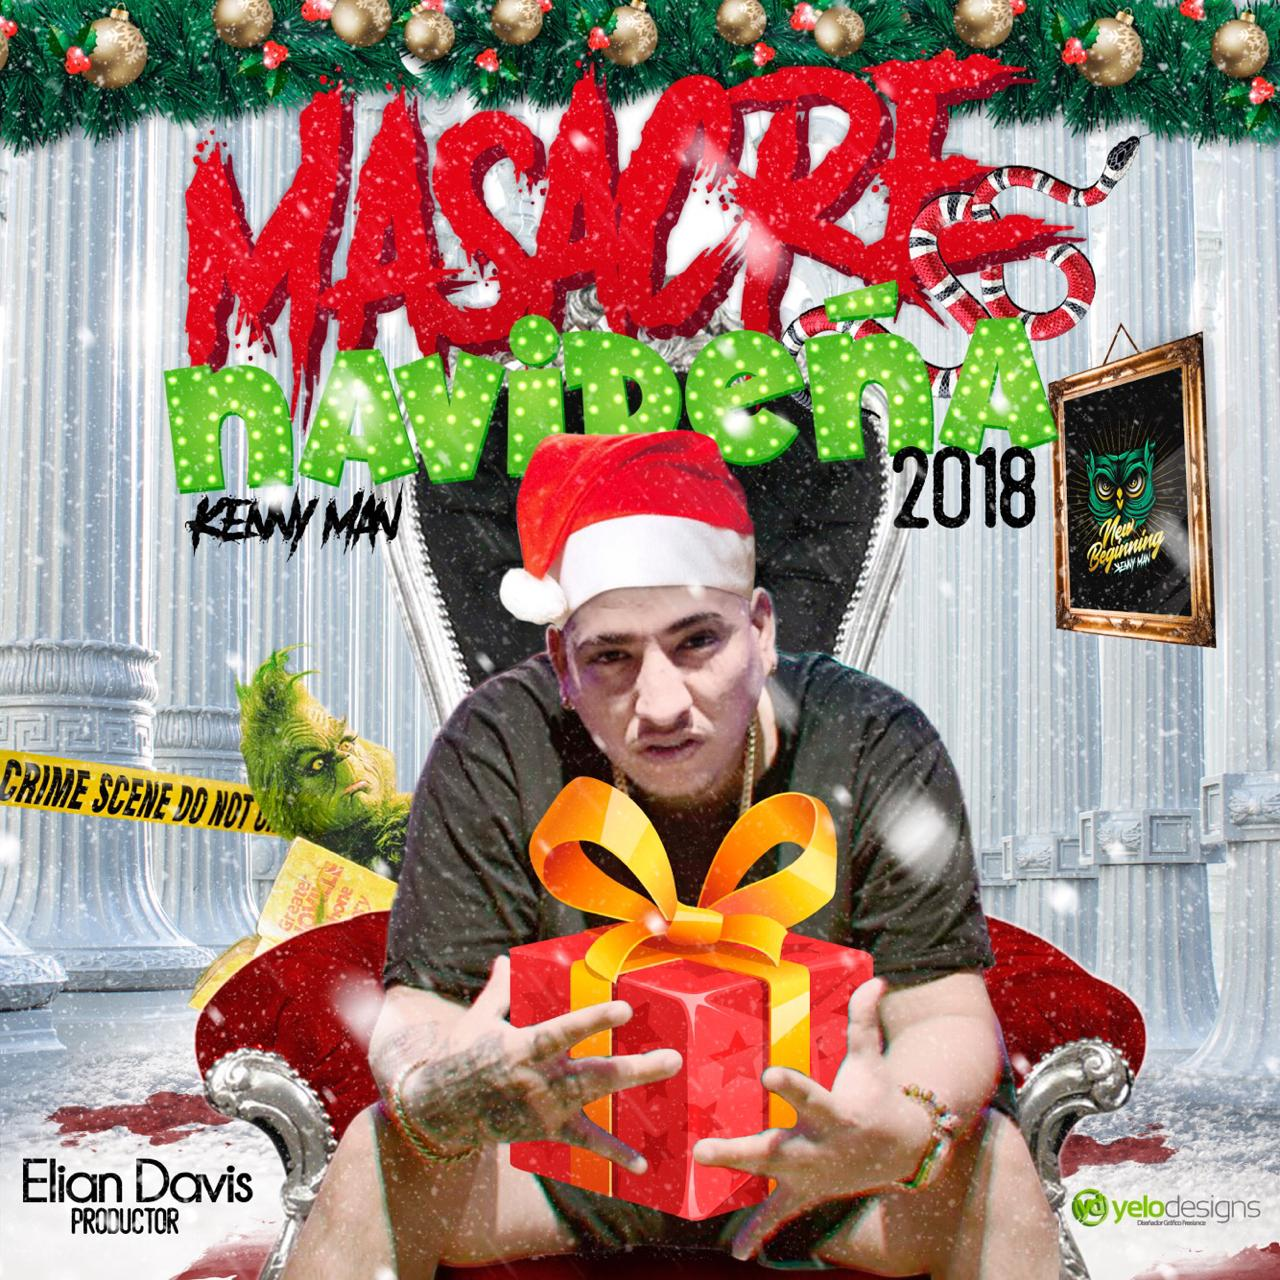 Kenny Man - Masacre Navidena 2018.mp3